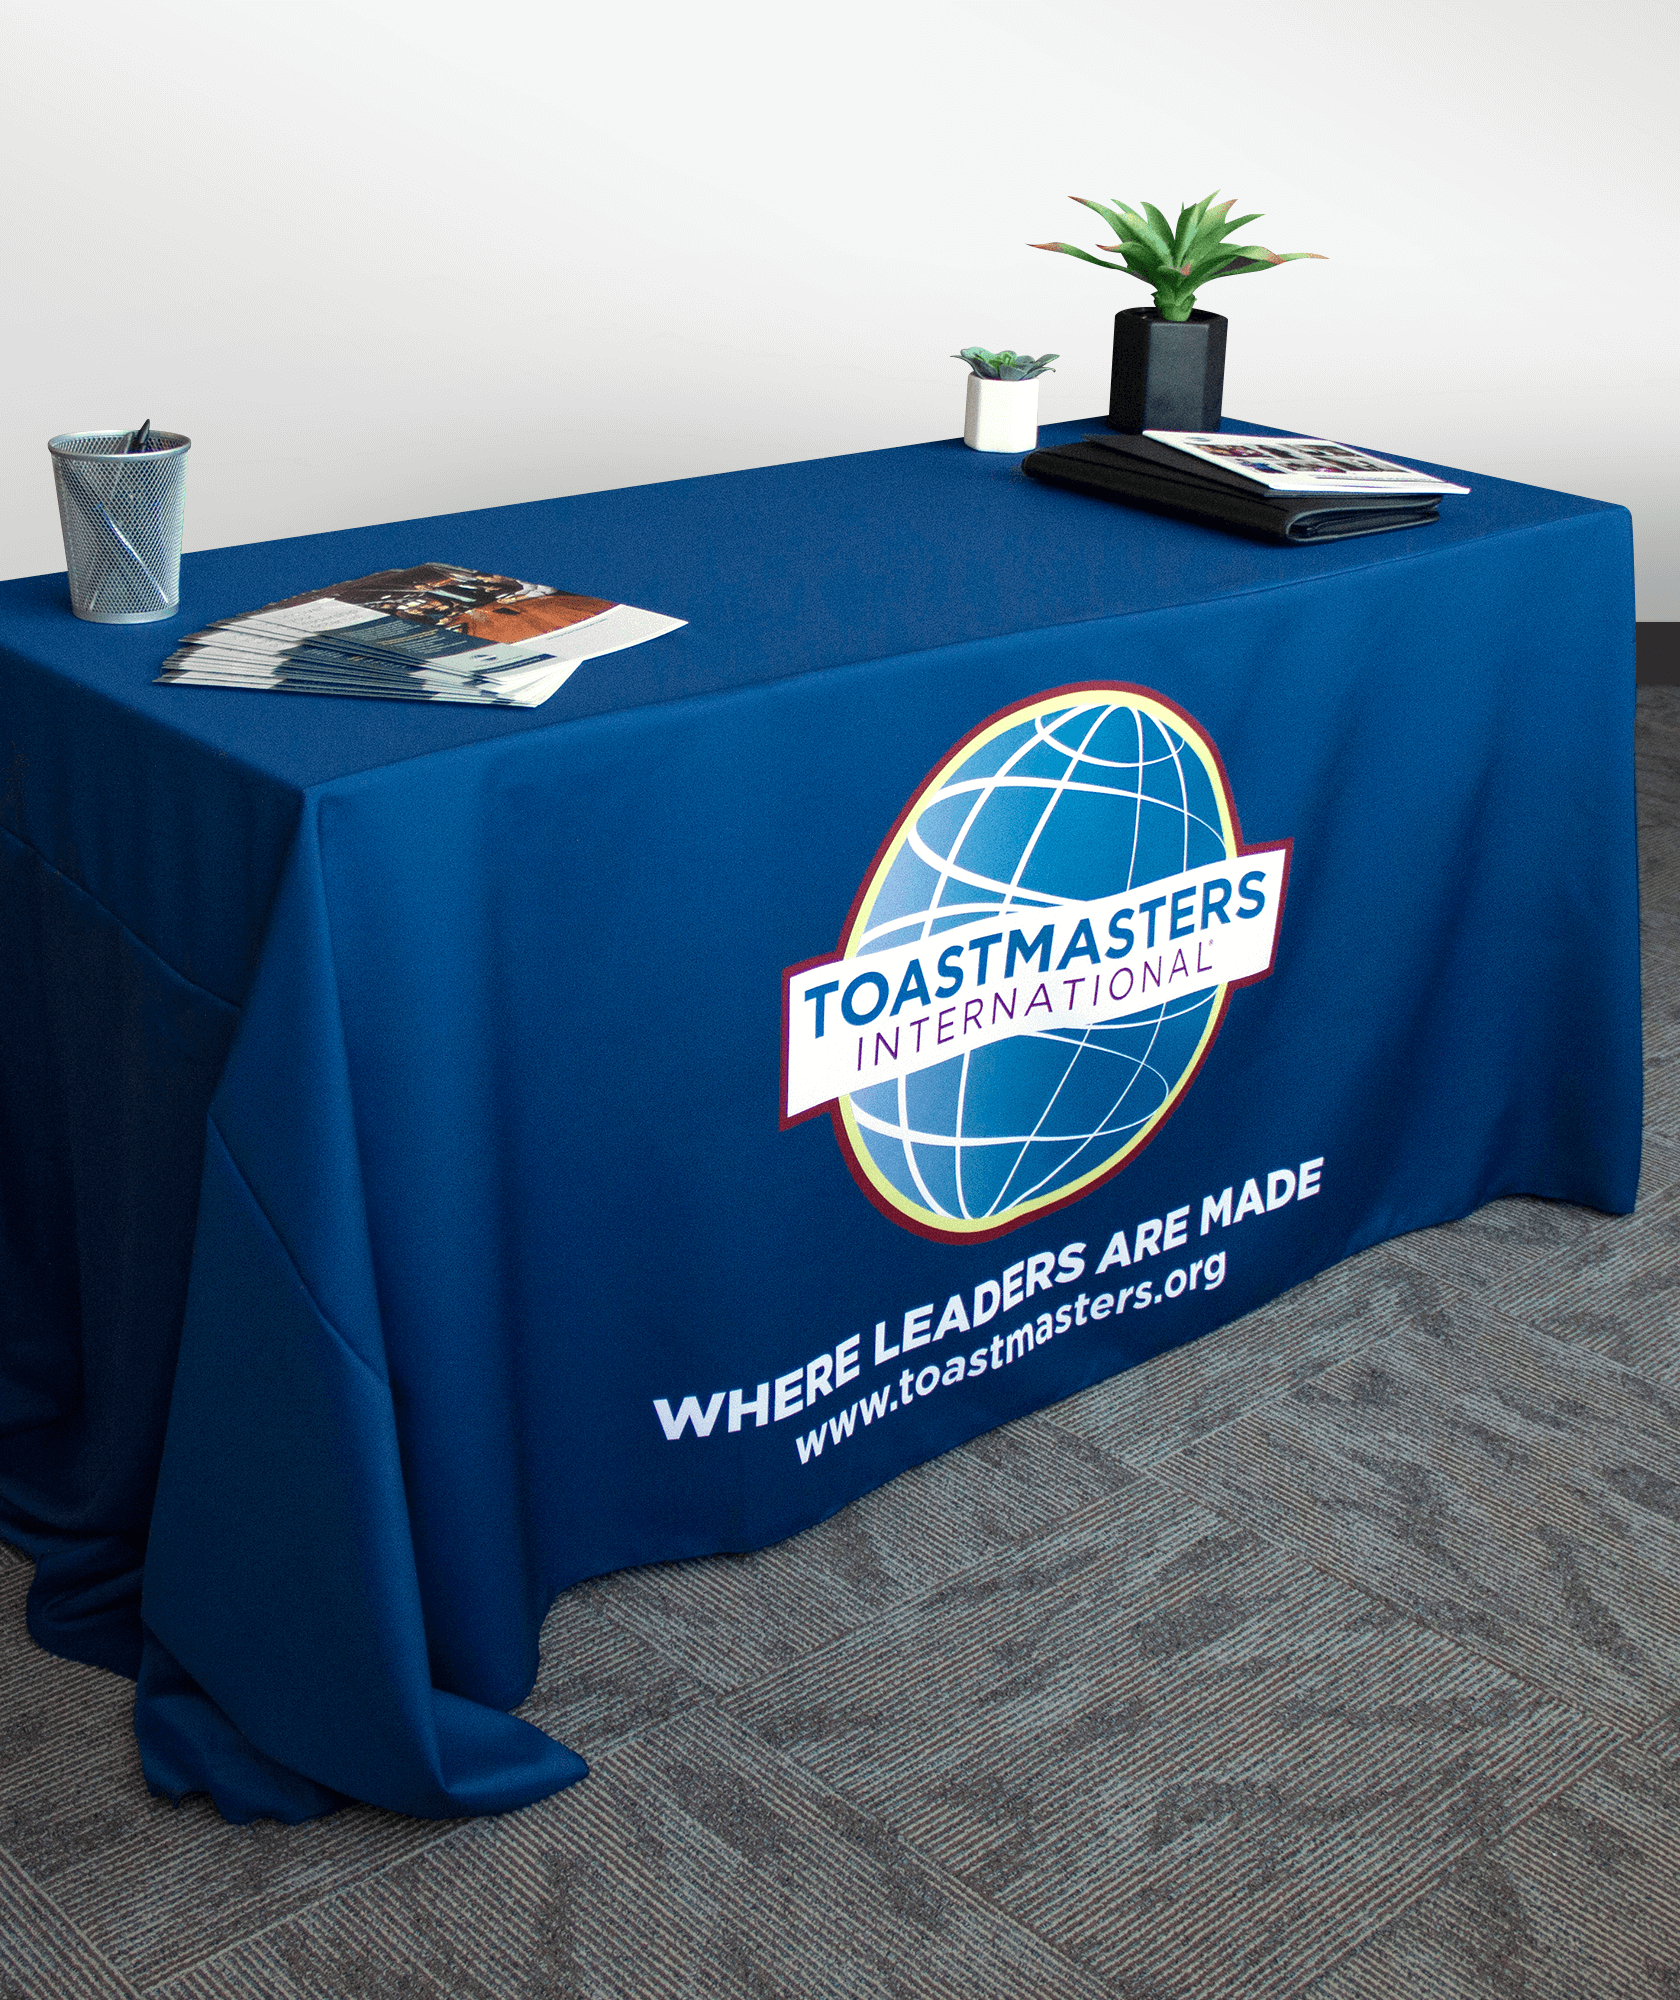 Navy tablecloth with color logo, tagline and website